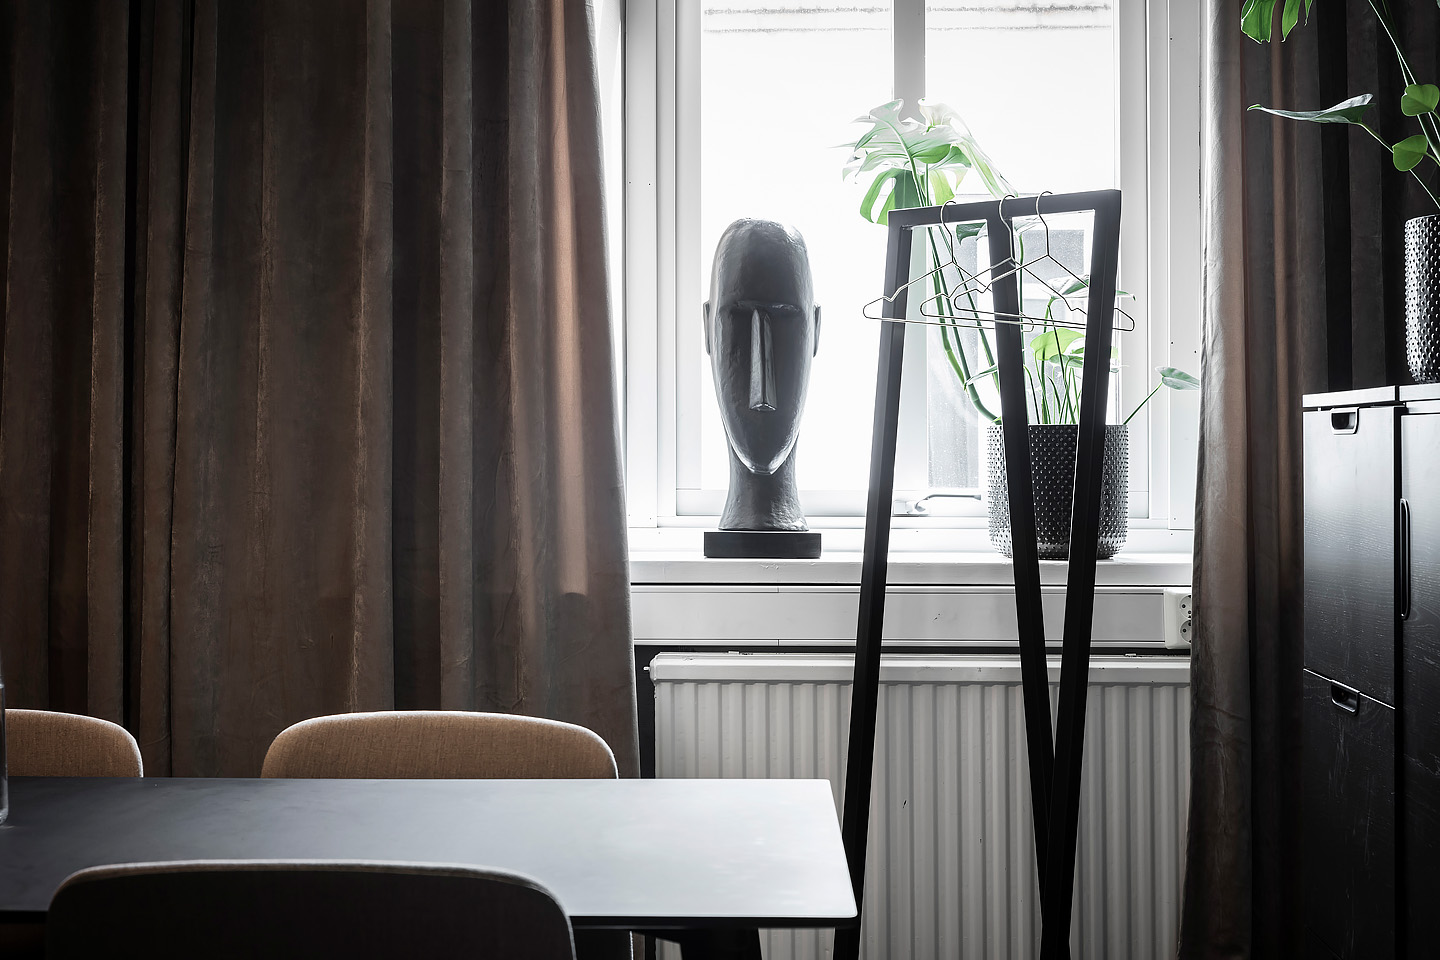 Cph 210 deux table, hay, Gubi multi-lite lamp, Loop stand hall, Jotex sammet, Studio A3, Byon